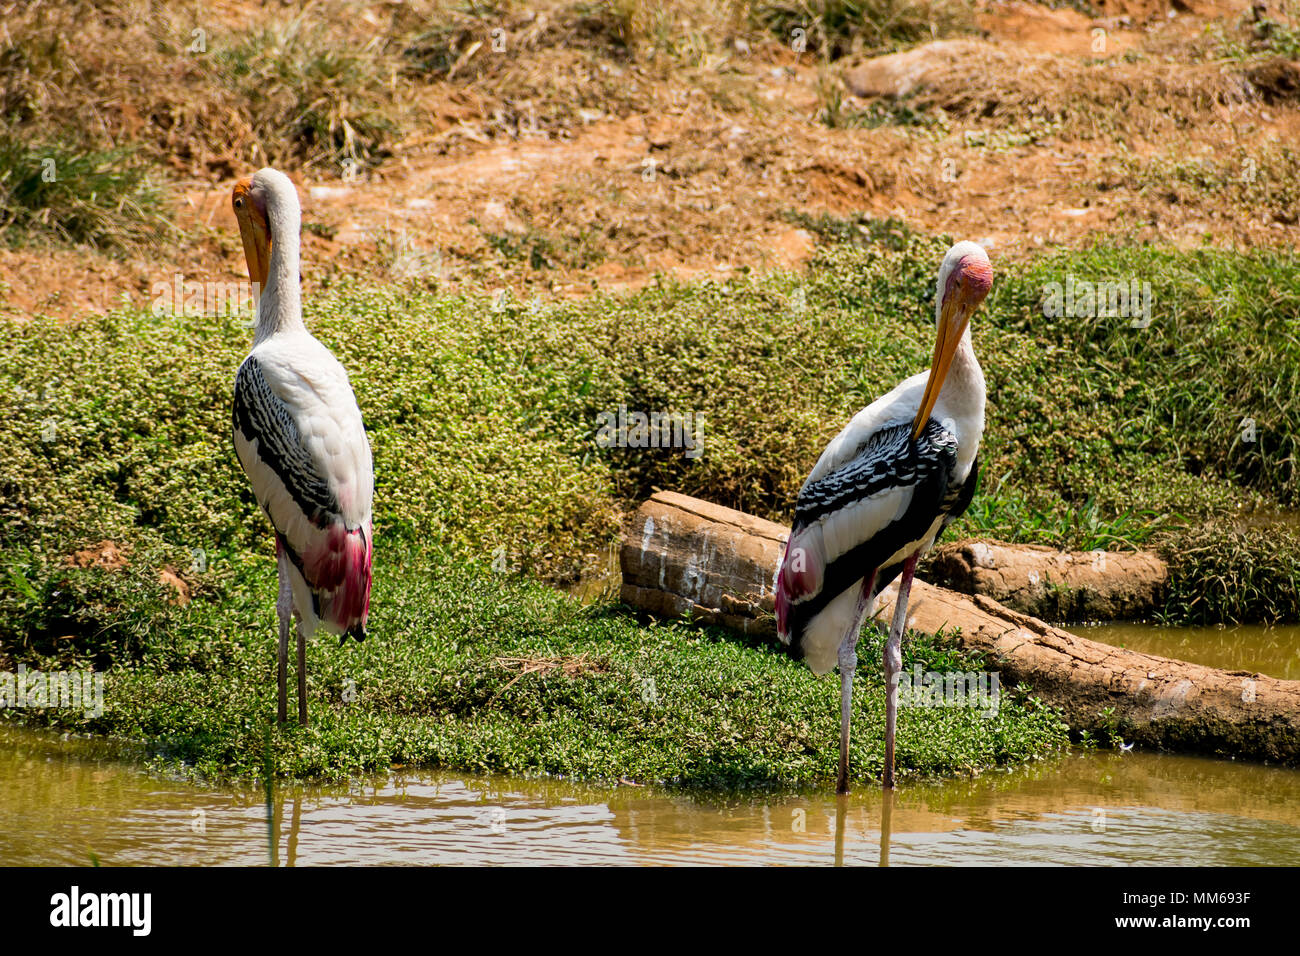 A couples of painted storks bird standing on steady at muddy water for fish close view. Stock Photo